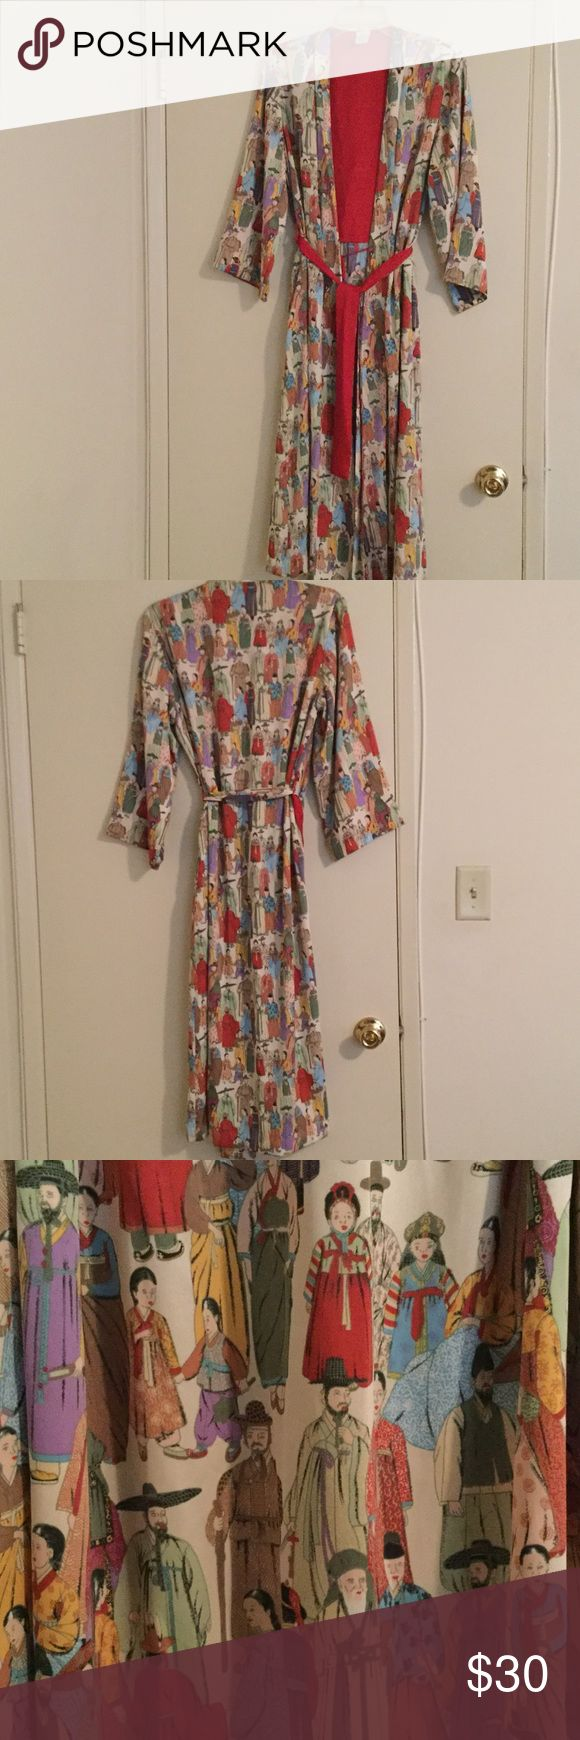 "NATORI Oriental People Design Robe. Size S NATORI Robe with Oriental People Design throughout. Folded Lapel from top to bottom. Partial red interior lining. Inside tie & outside belt. 100% Polyester. Size Small. Approx length 48"". NATORI Intimates & Sleepwear Robes"